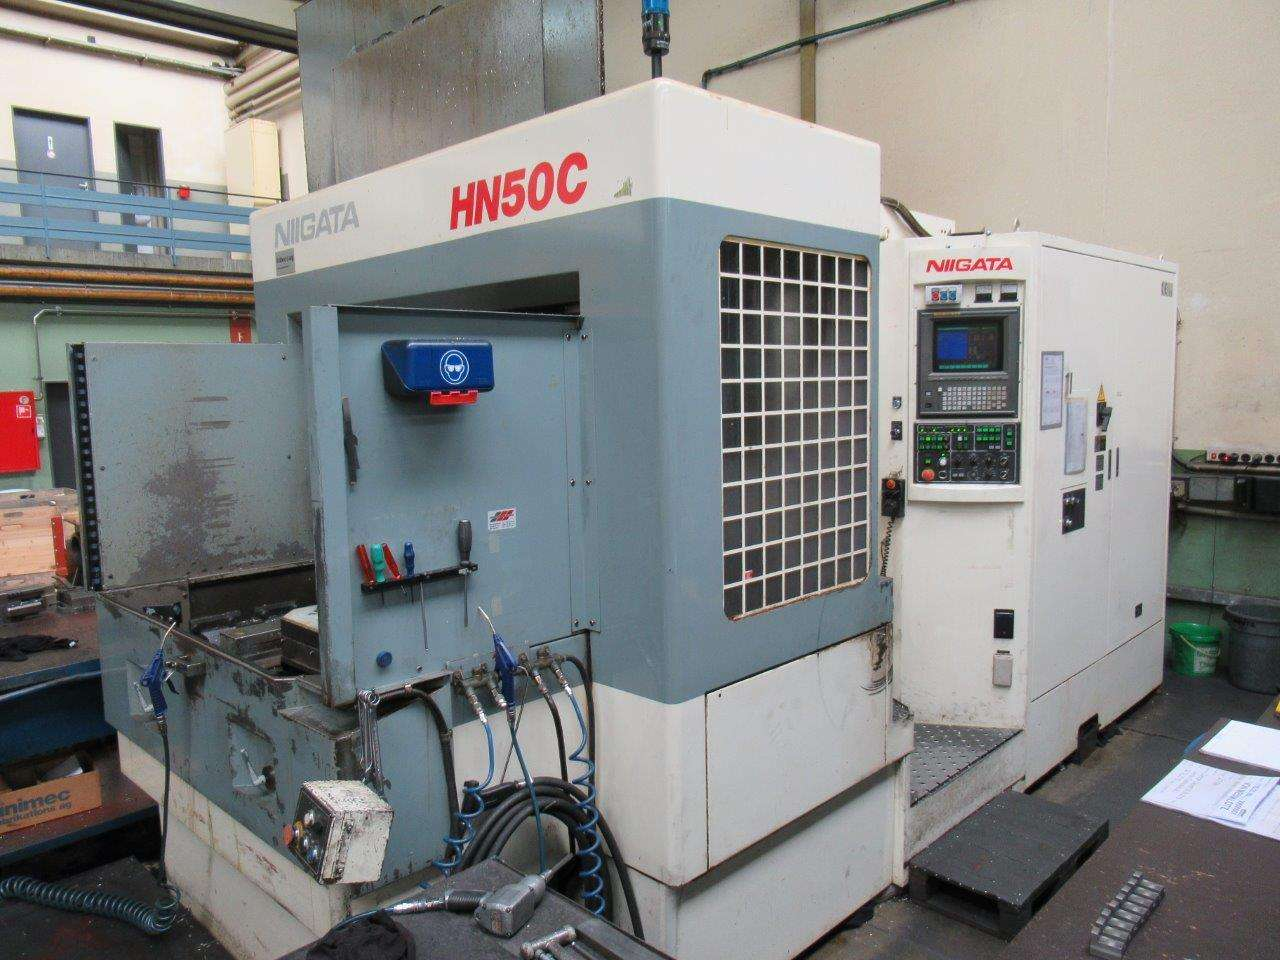 Machining Center - Horizontal Horizontal Bearbeitungszentrum Niigata HN50C фото на Industry-Pilot